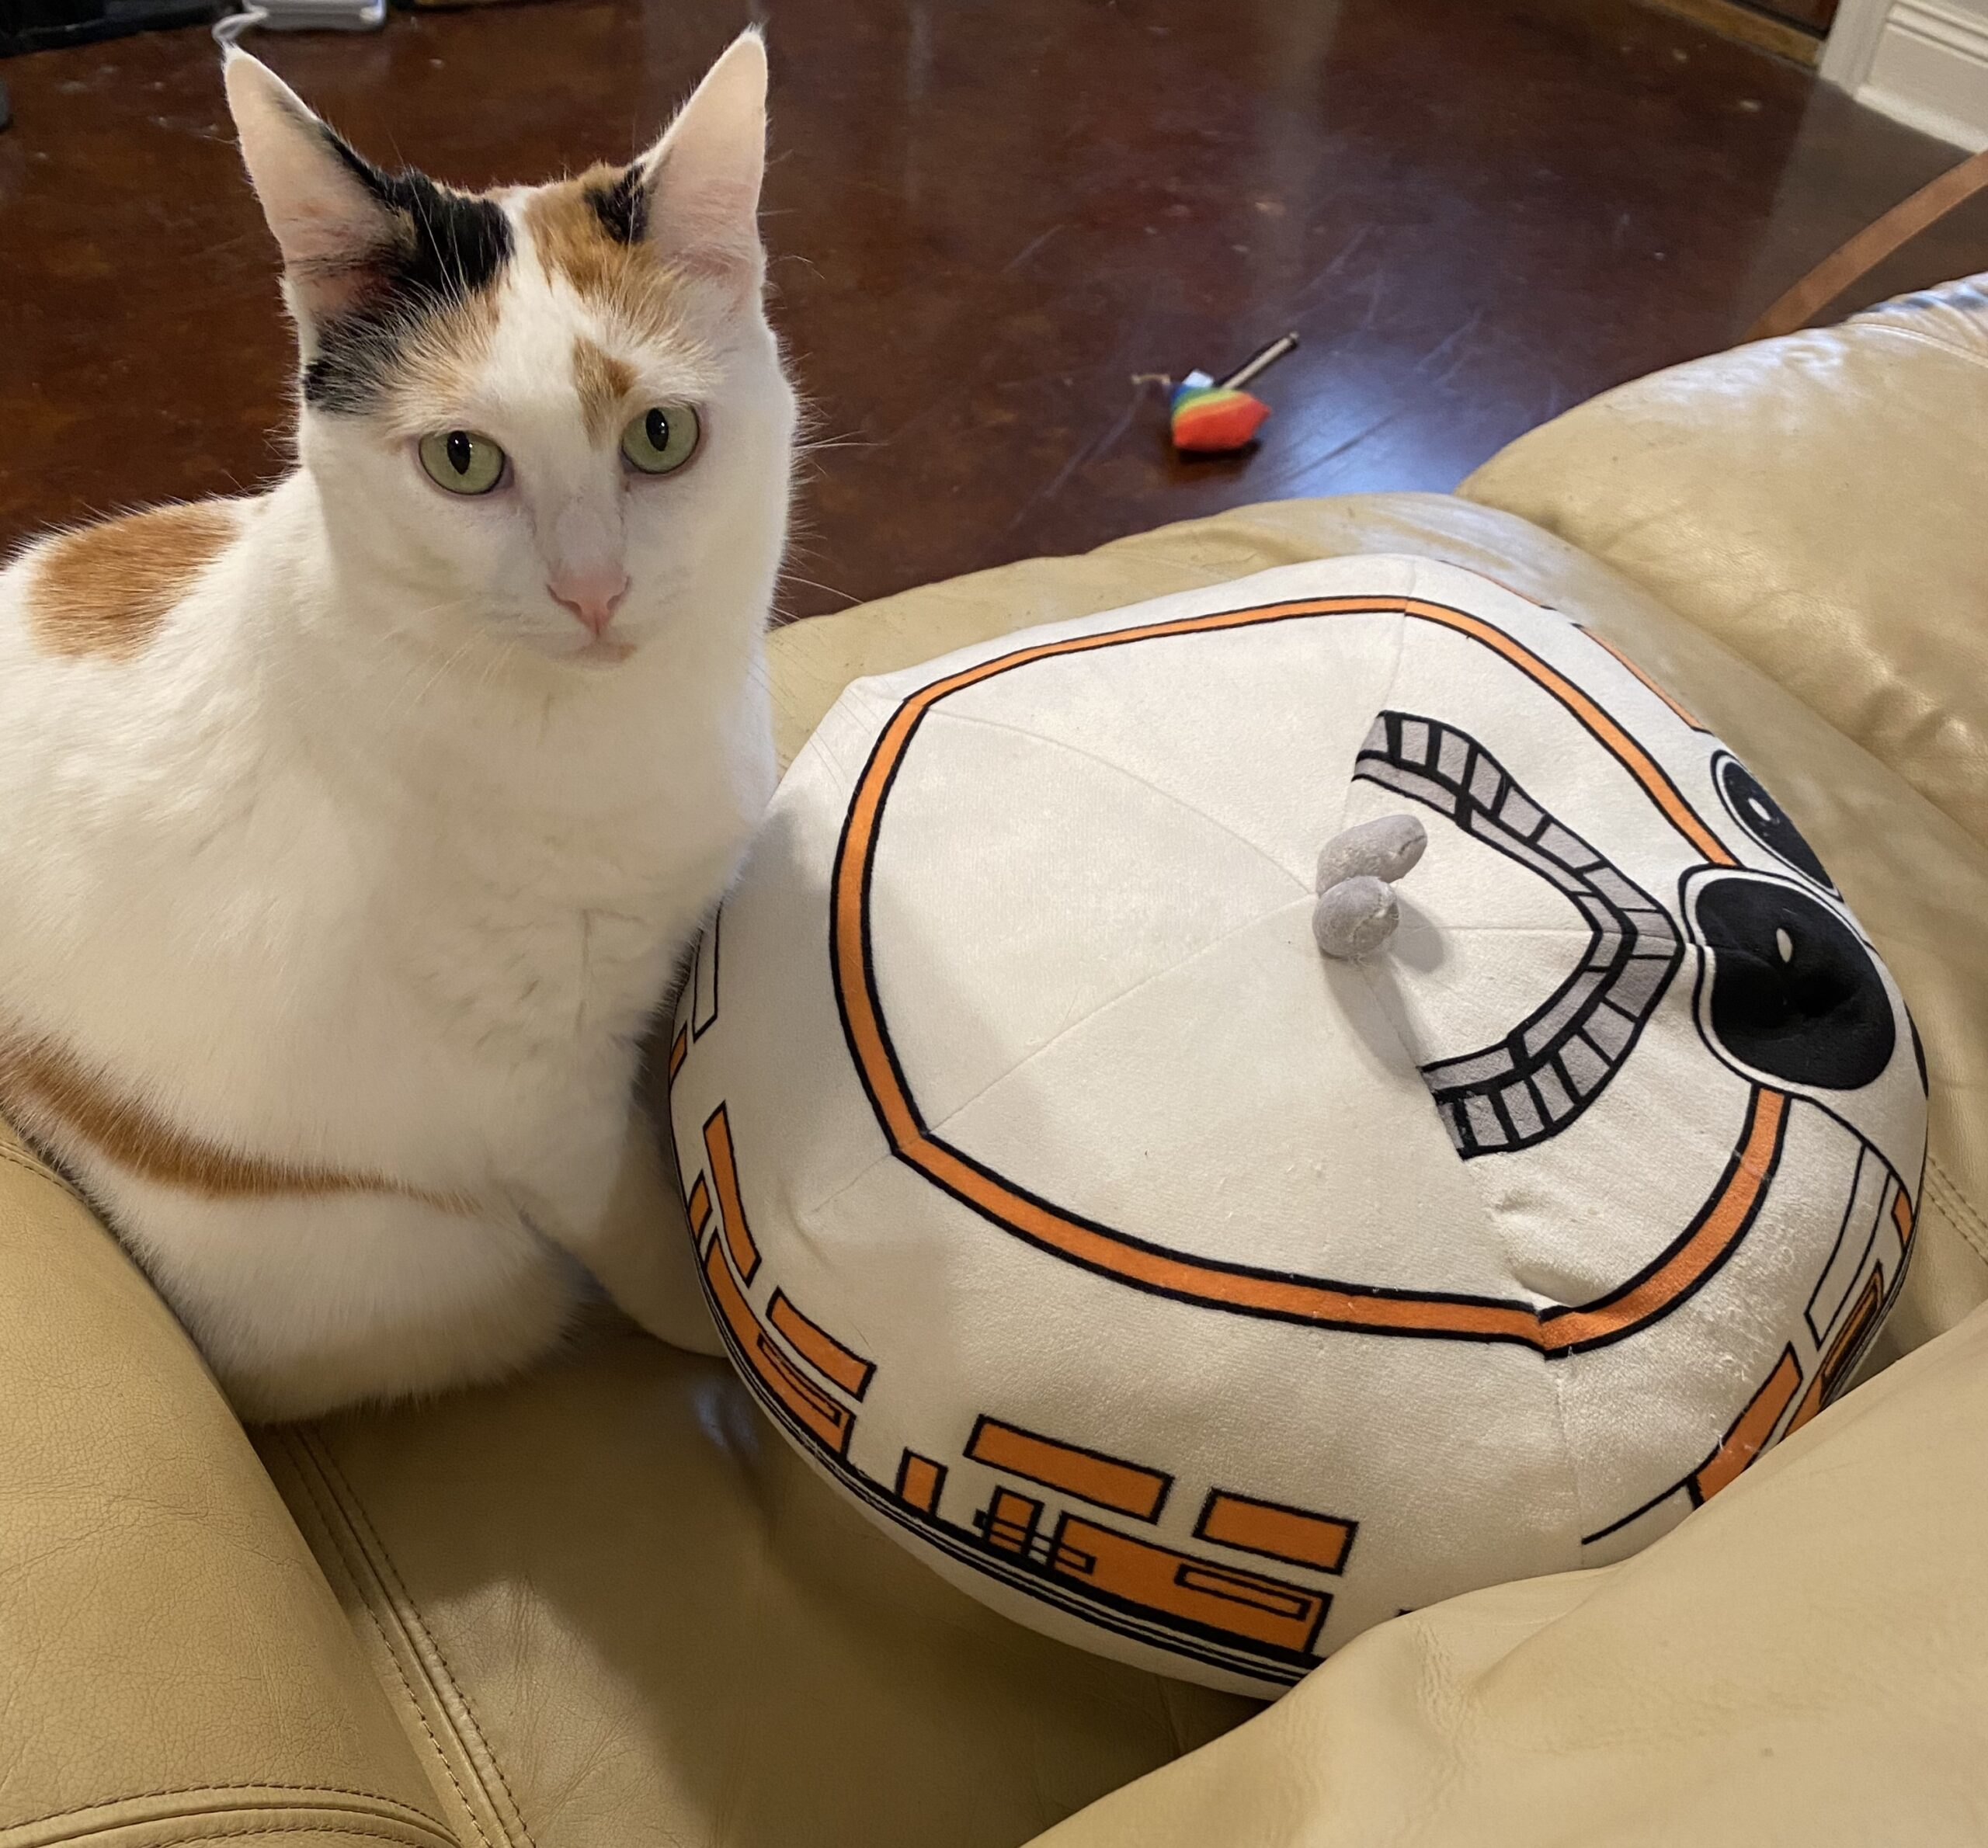 an orange and white cat next to an orange and white pillow